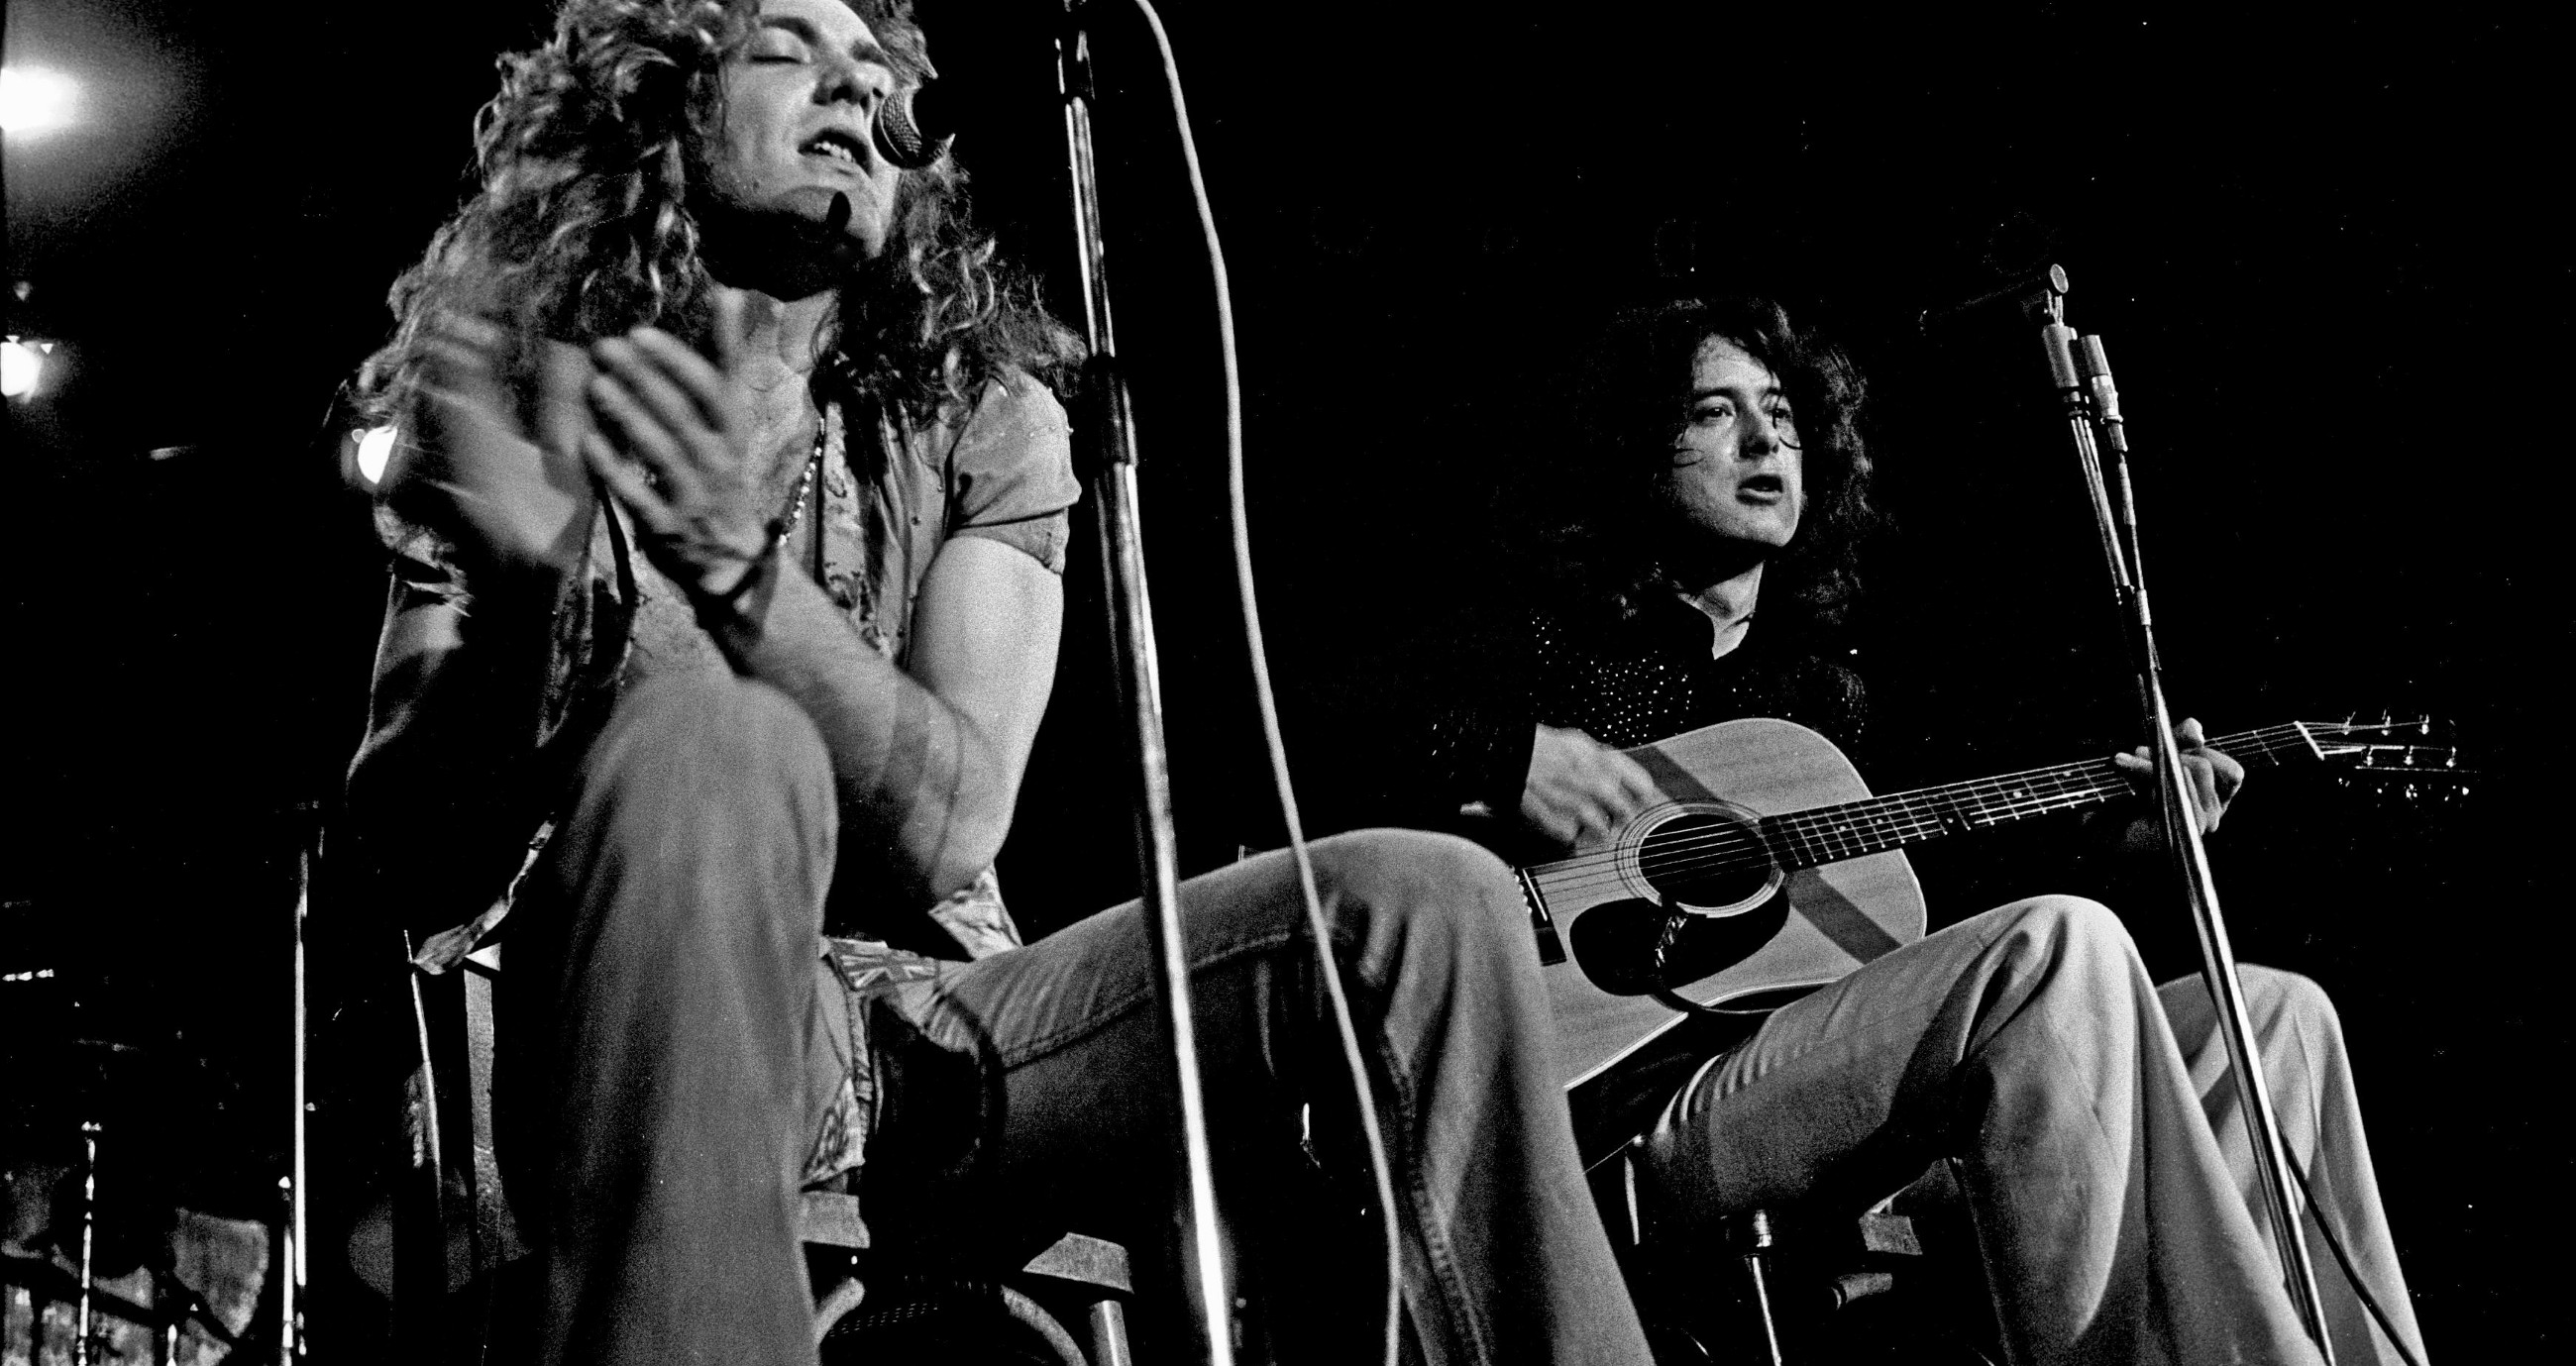 The Brief Life and Long Legacy of Led Zeppelin, in Eleven Songs